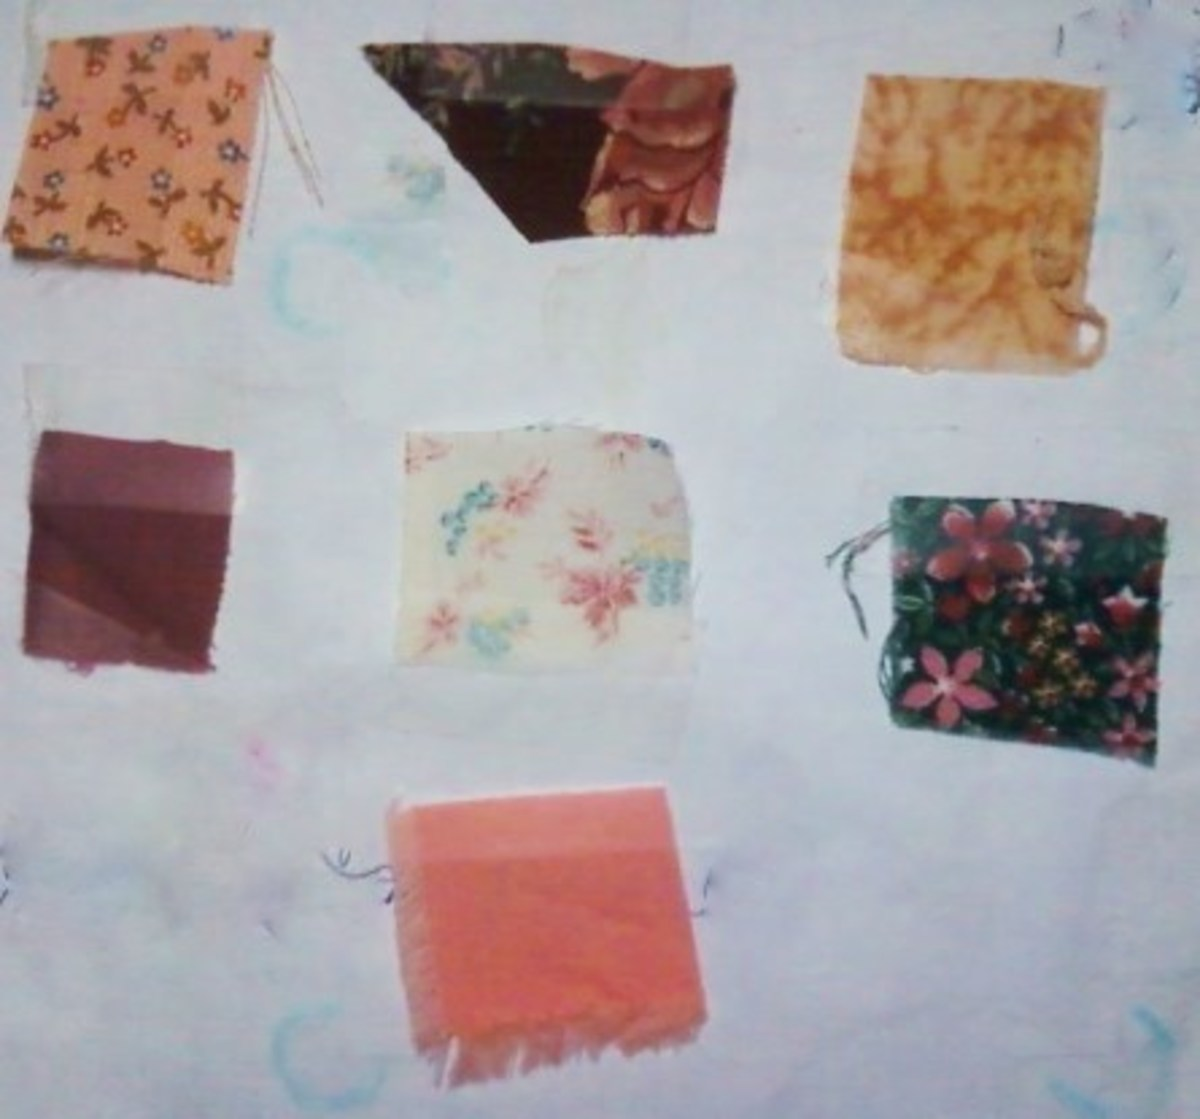 Pink print (top left), large print on cranberry (top center), speckled golden brown (top right), rose (center left), light print (center), dark small flower print (right center), and salmon.